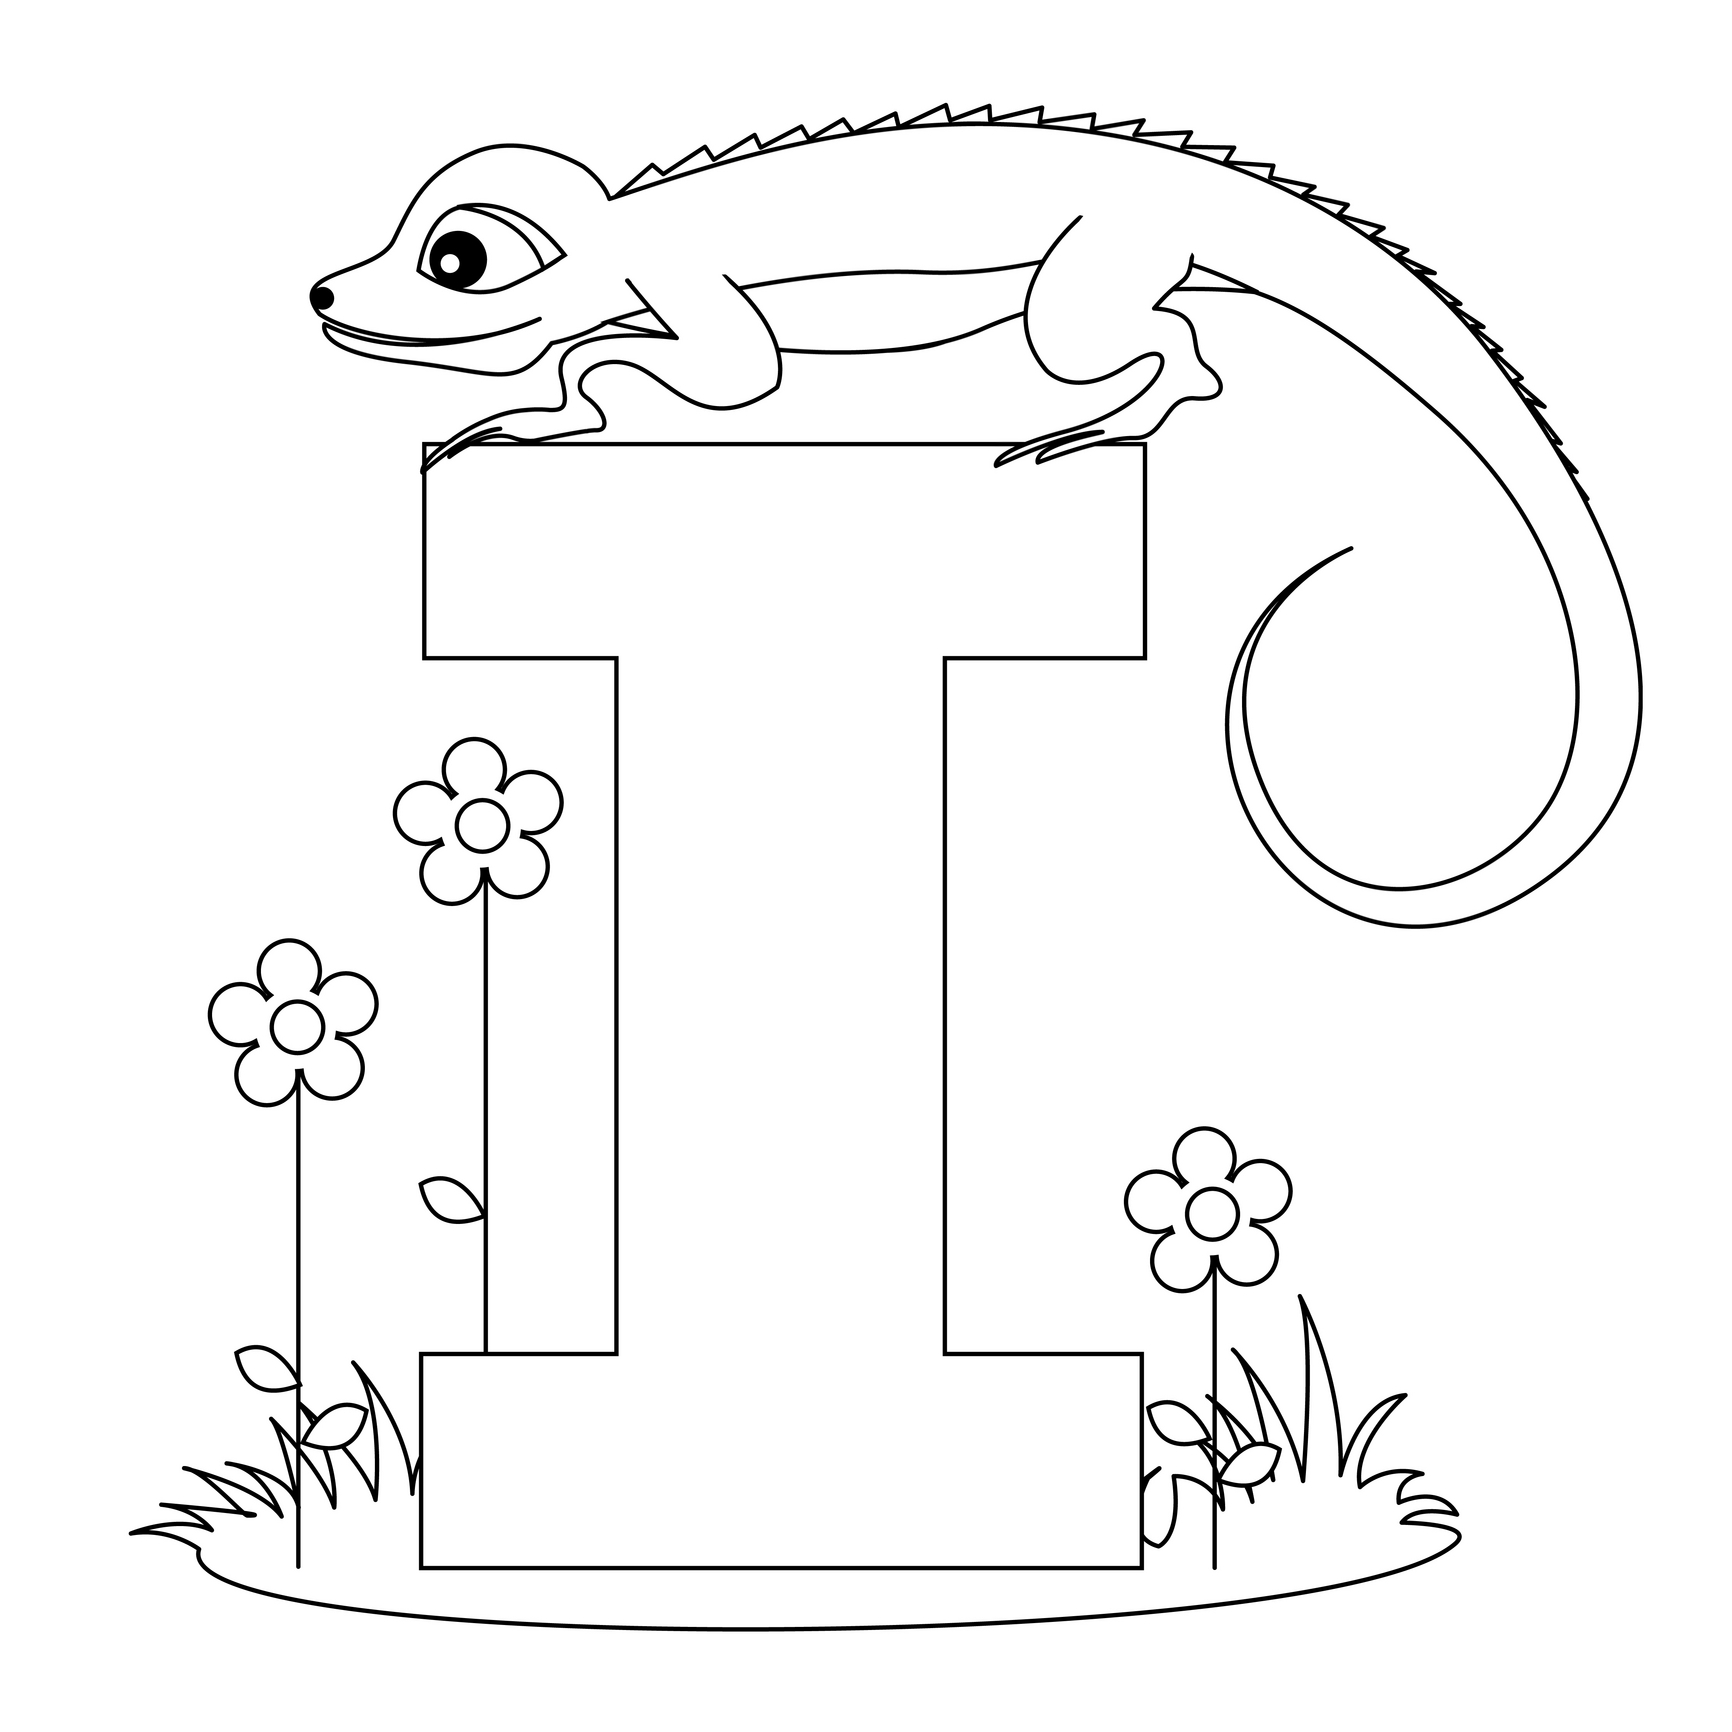 Letter I Coloring Pages To Download And Print For Free